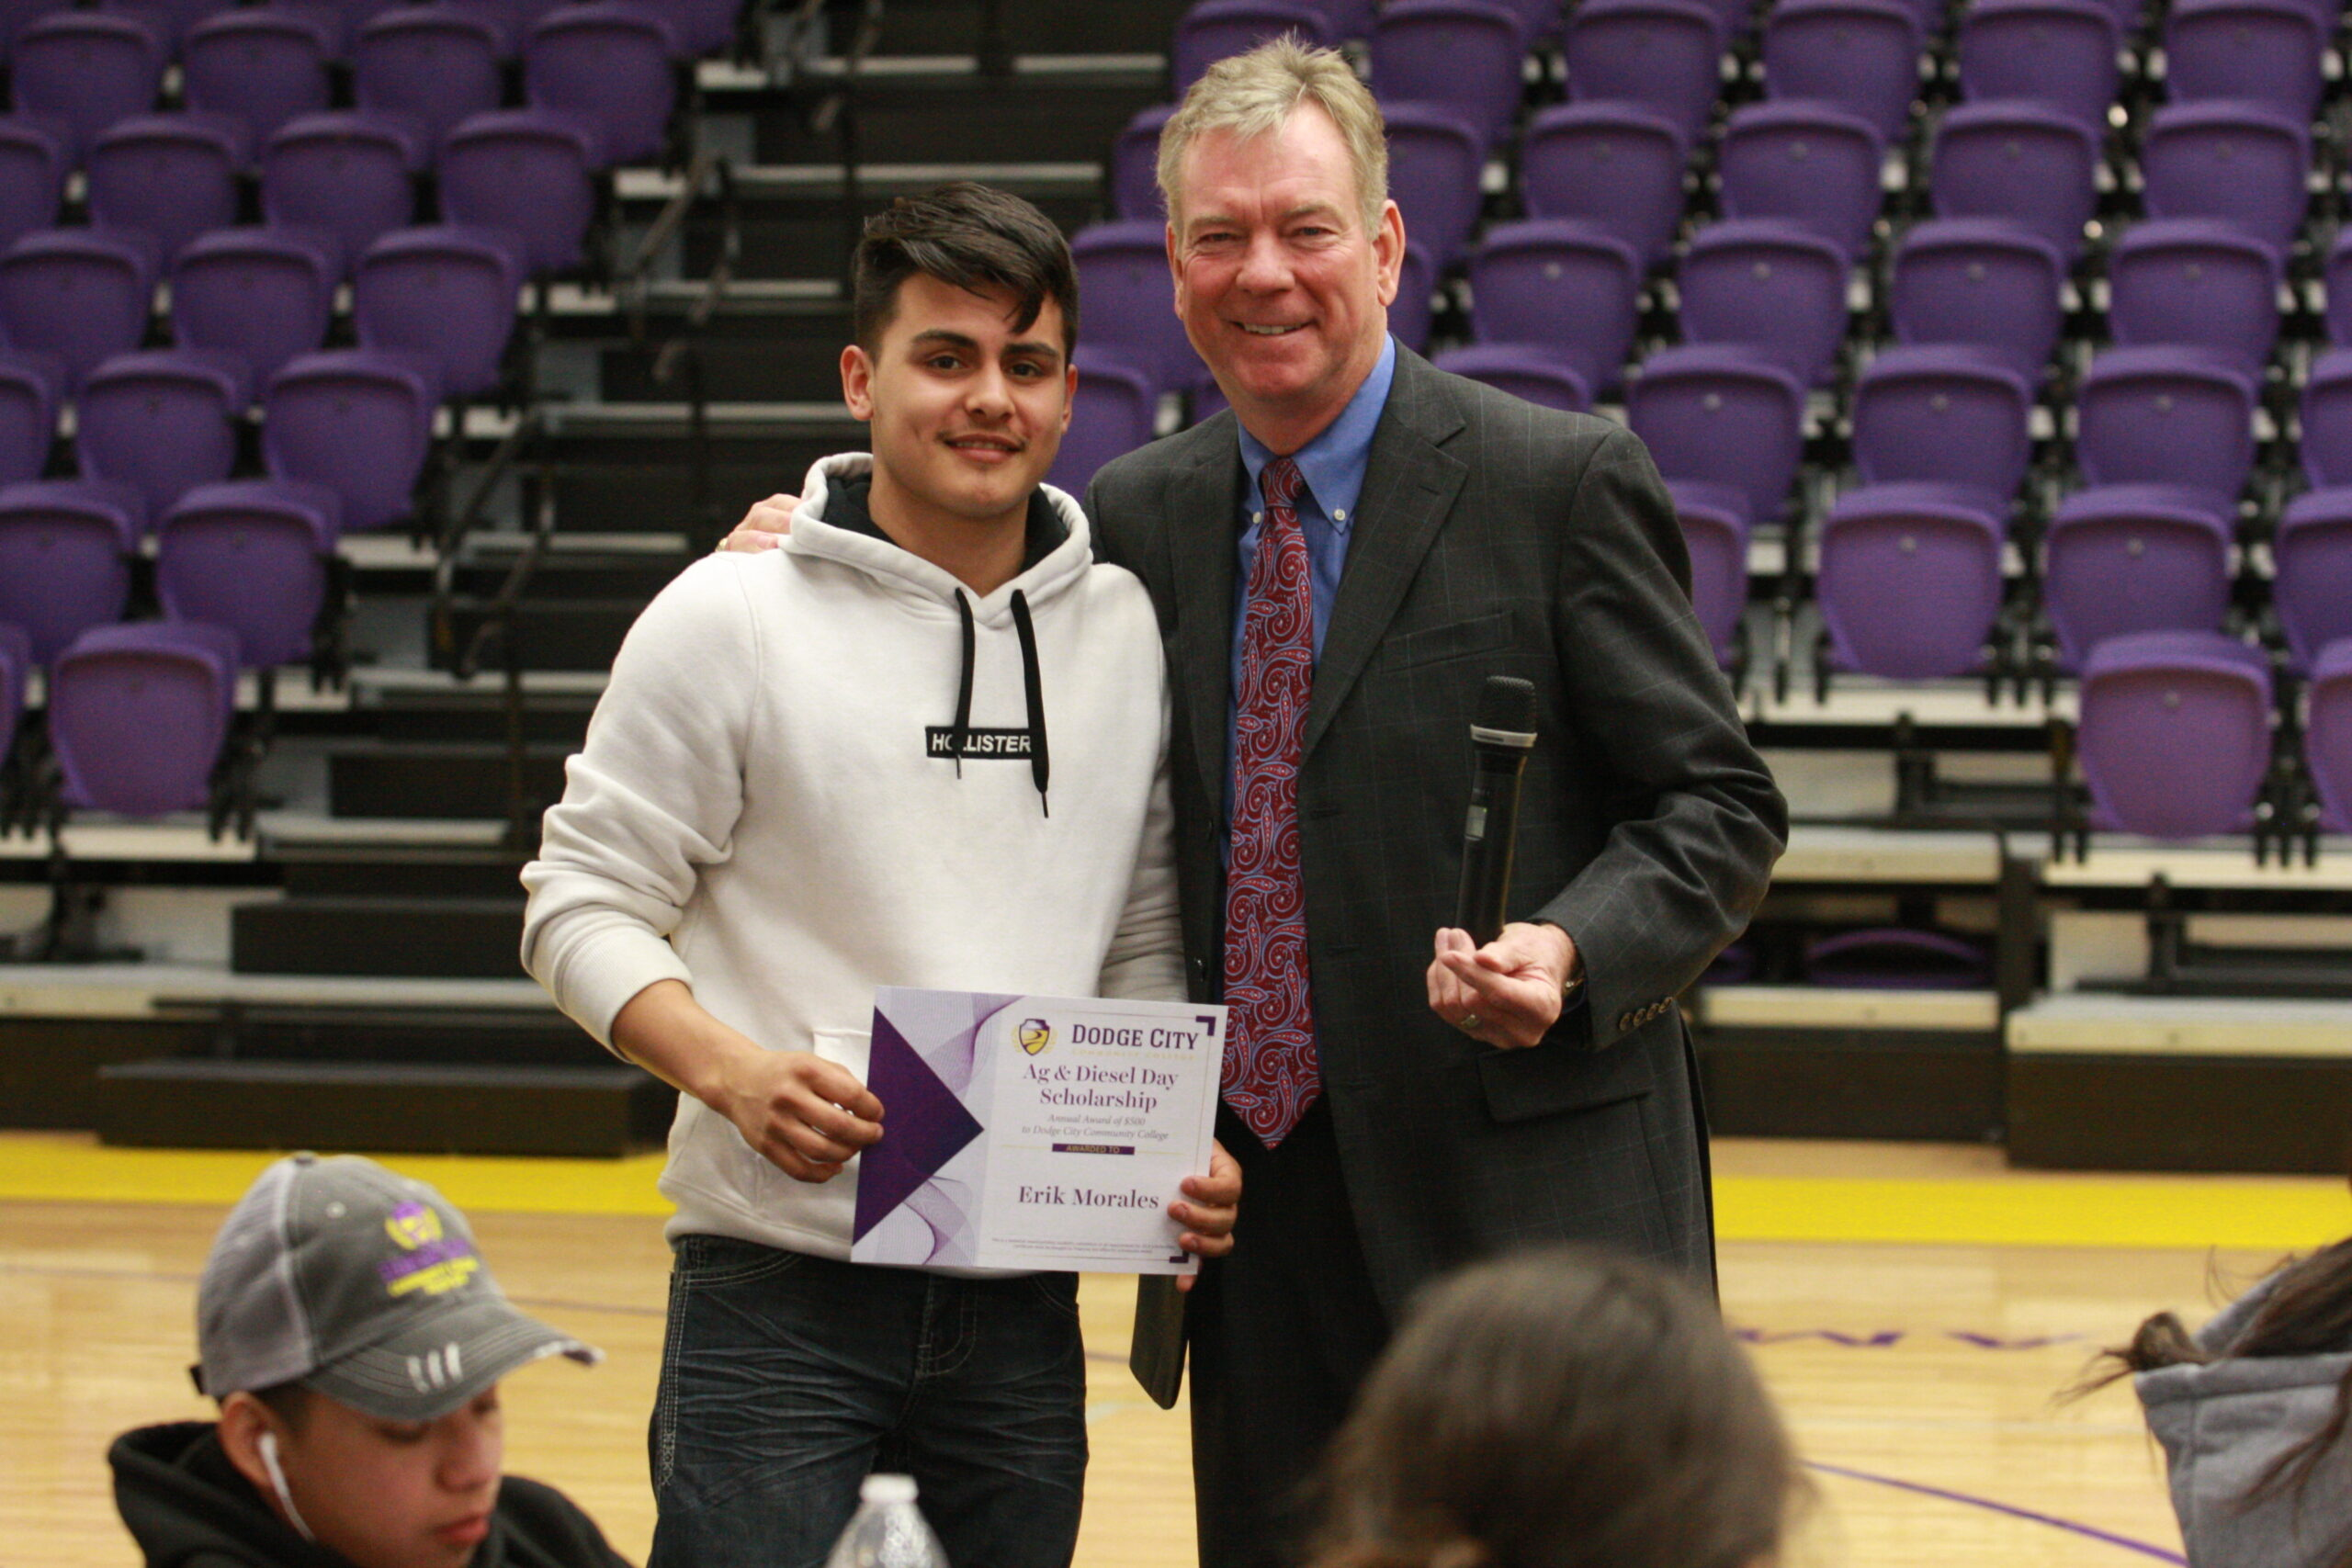 DCHS student Erik Morales poses with Dr. Harold Nolte, president of DC3 after receiving a scholarship for ag & diesel day